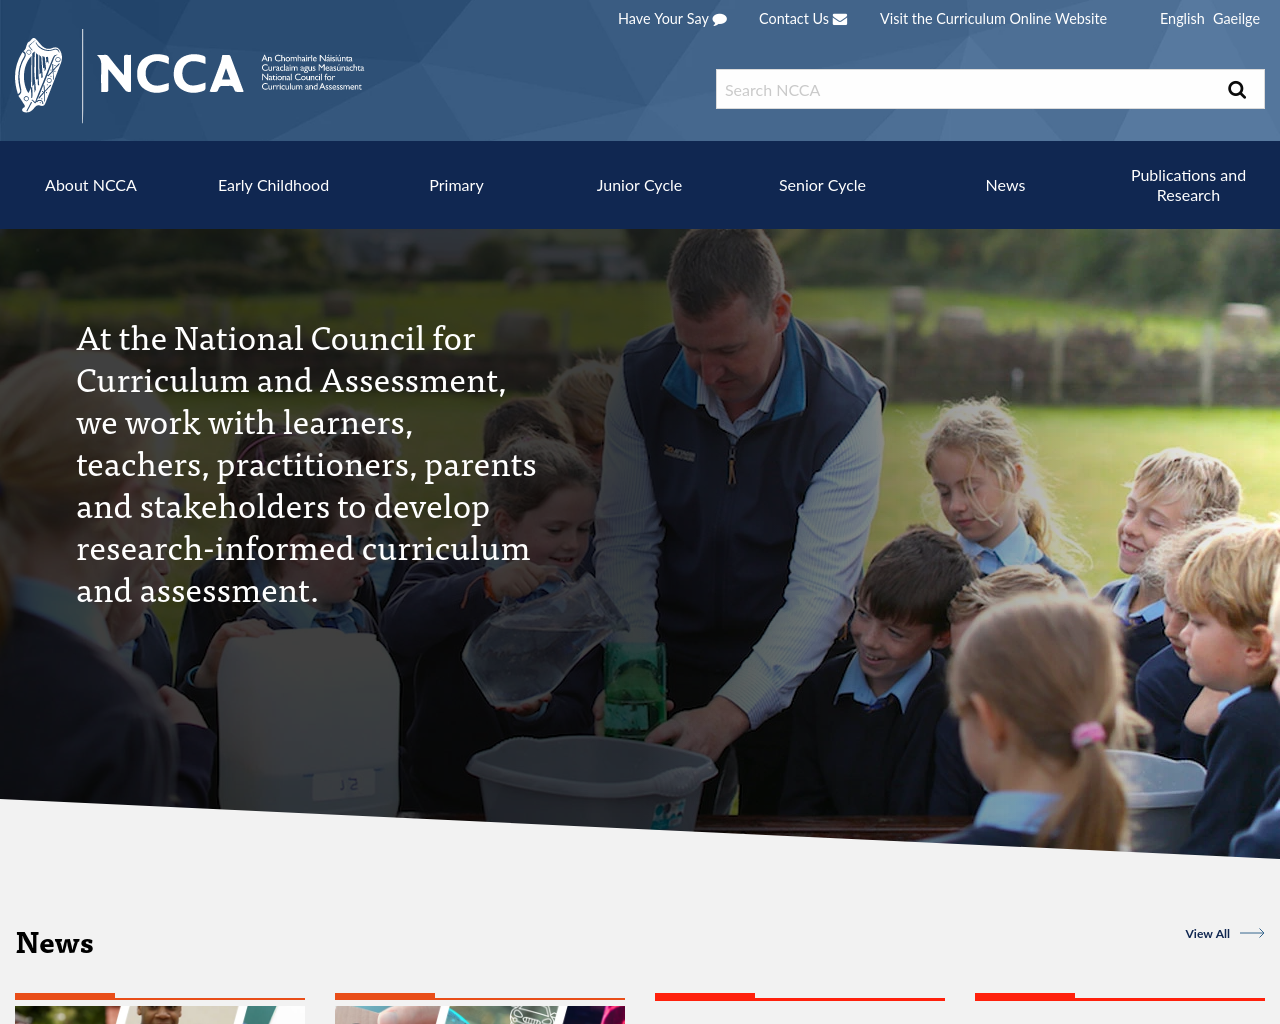 The National Council for Curriculum and Assessment